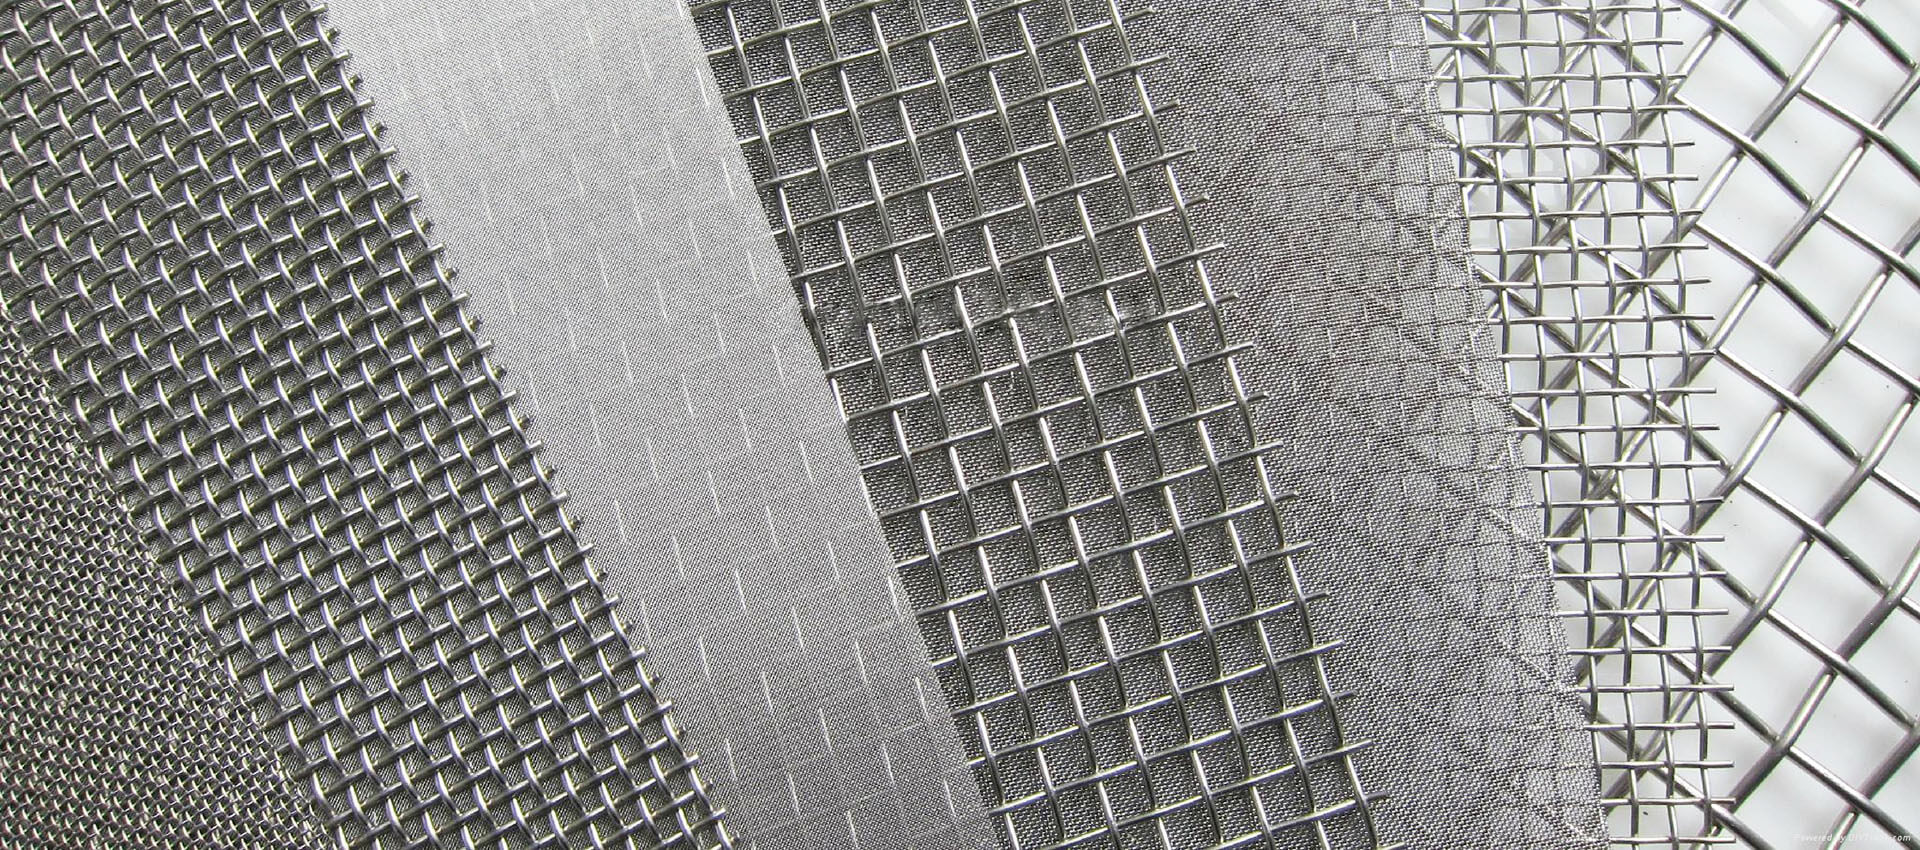 Stainless Steel Woven Wire Mesh Screens